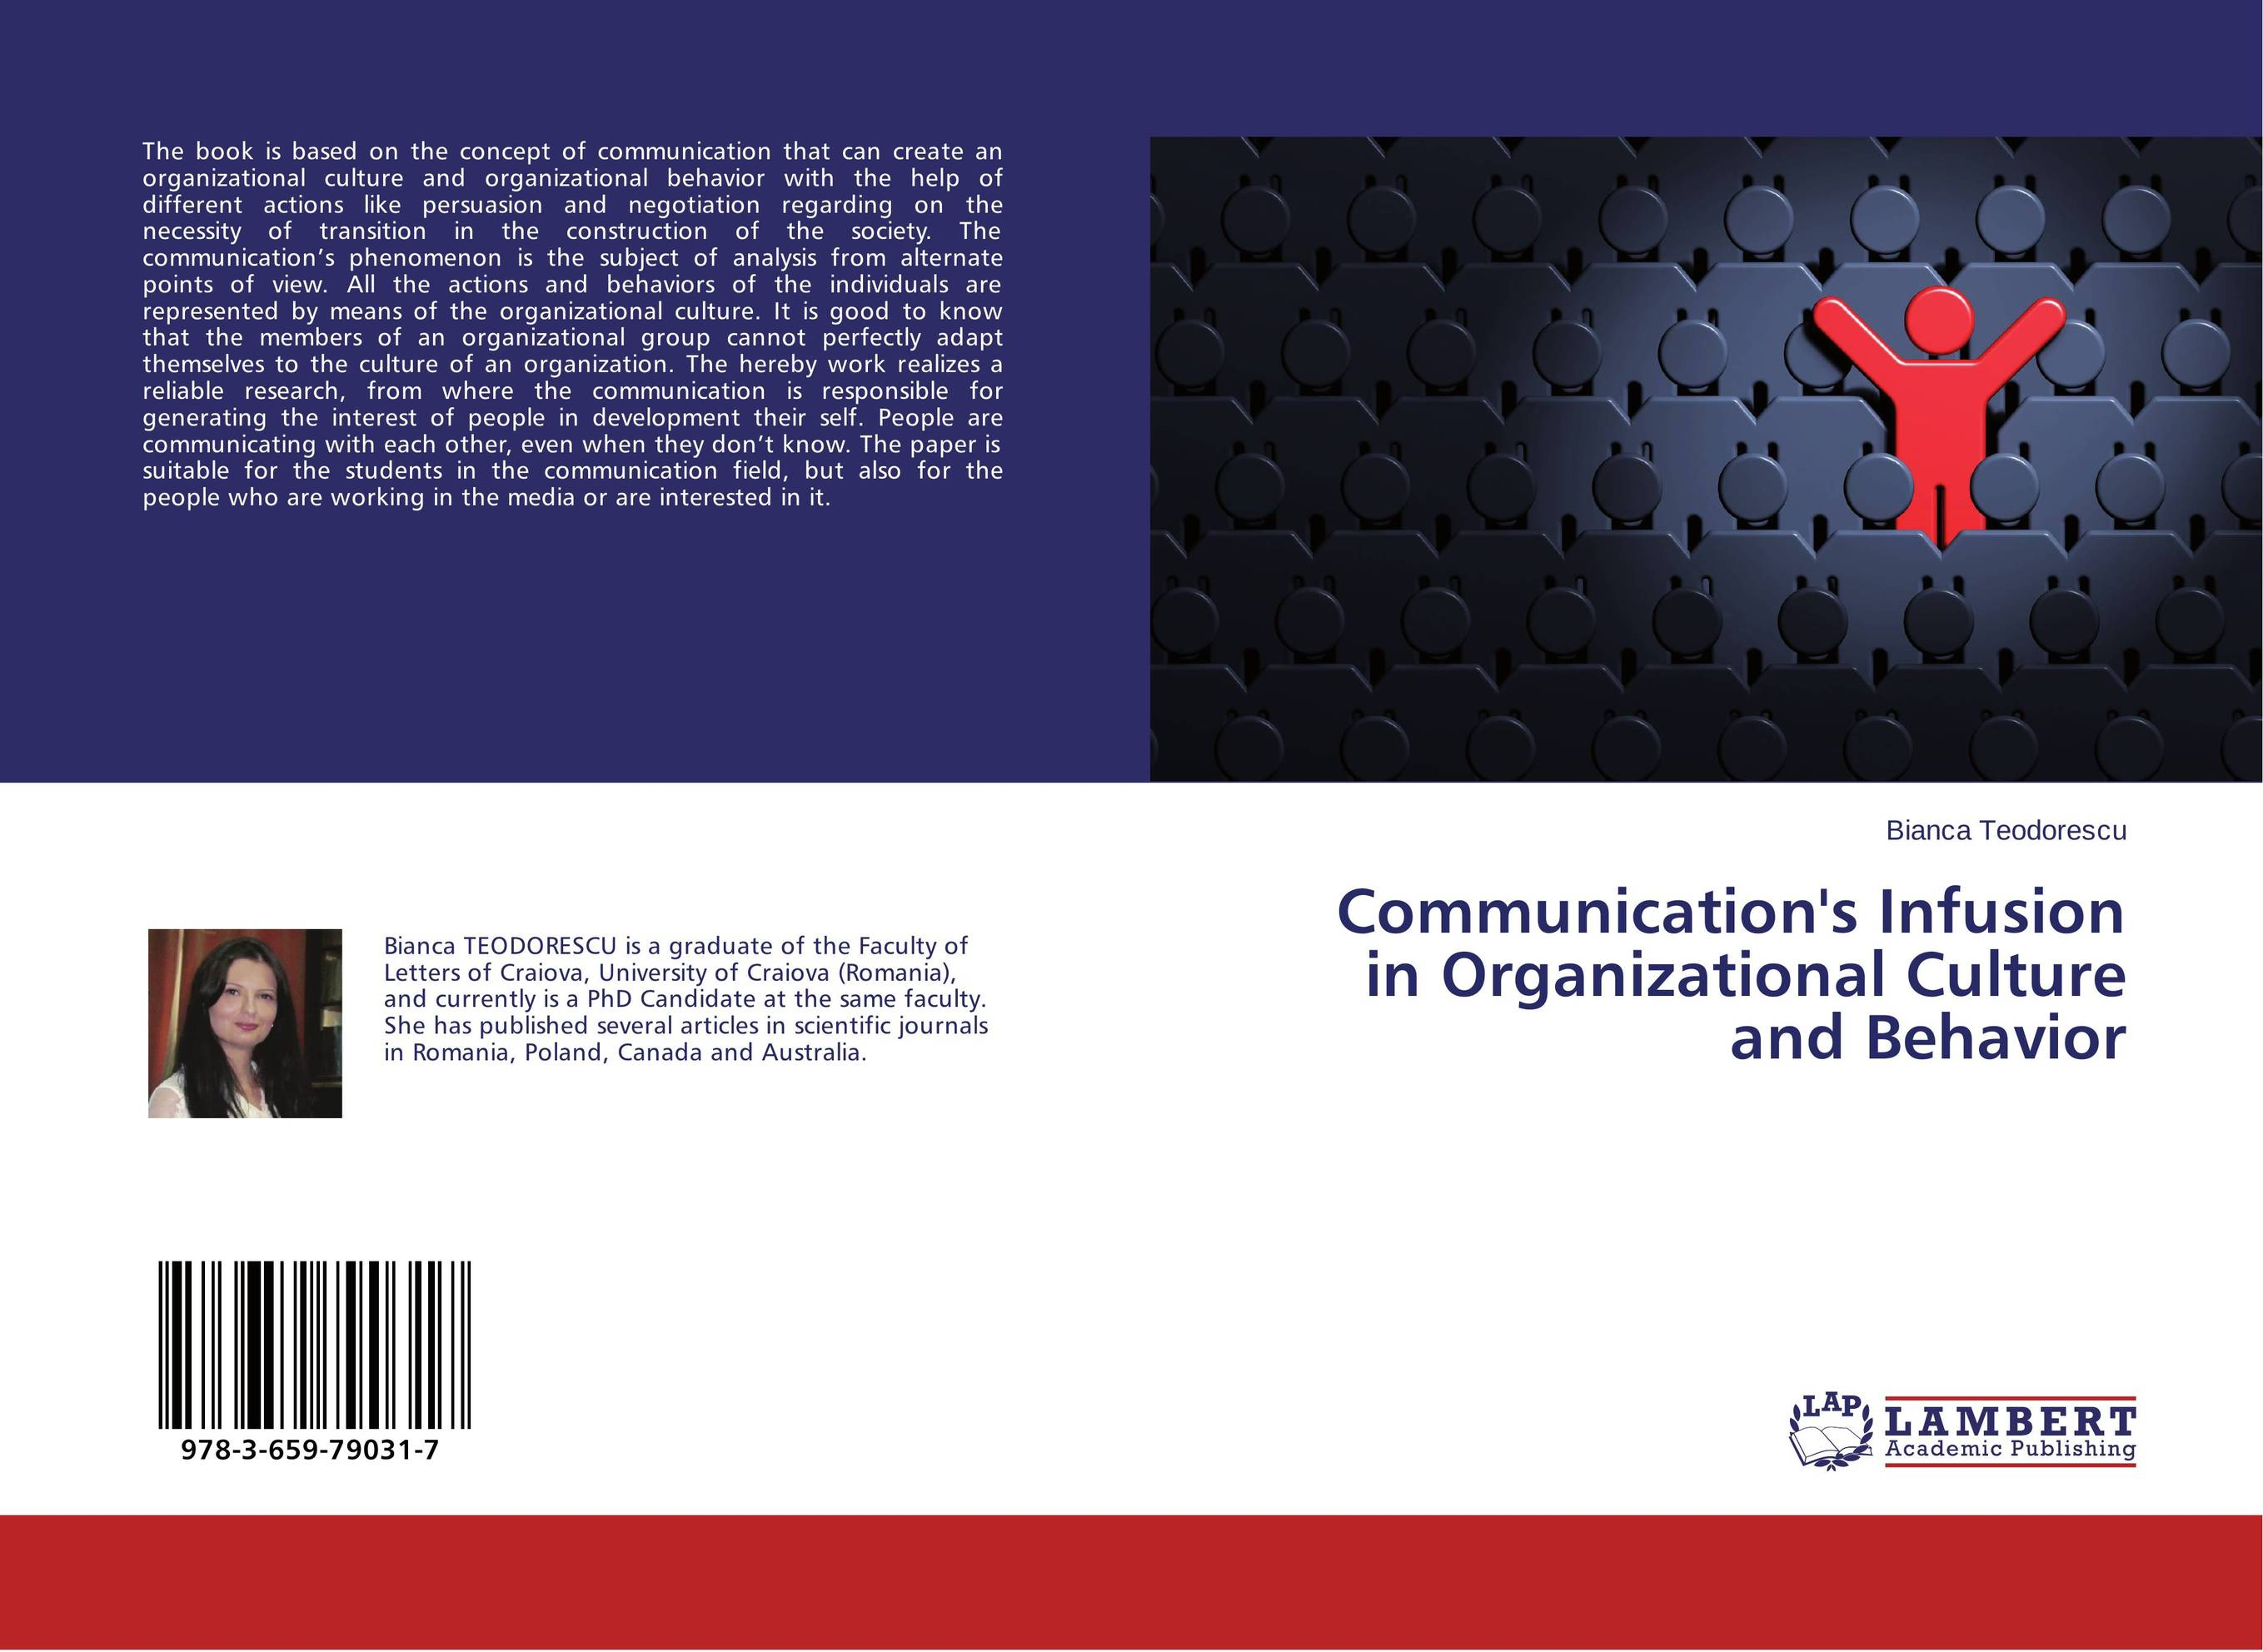 organizational behavior and communication paper communications The four types of organizational communications that the book discusses is downward communication, upward communication, horizontal communication and the best-known system for transmitting communication is the grapevine.